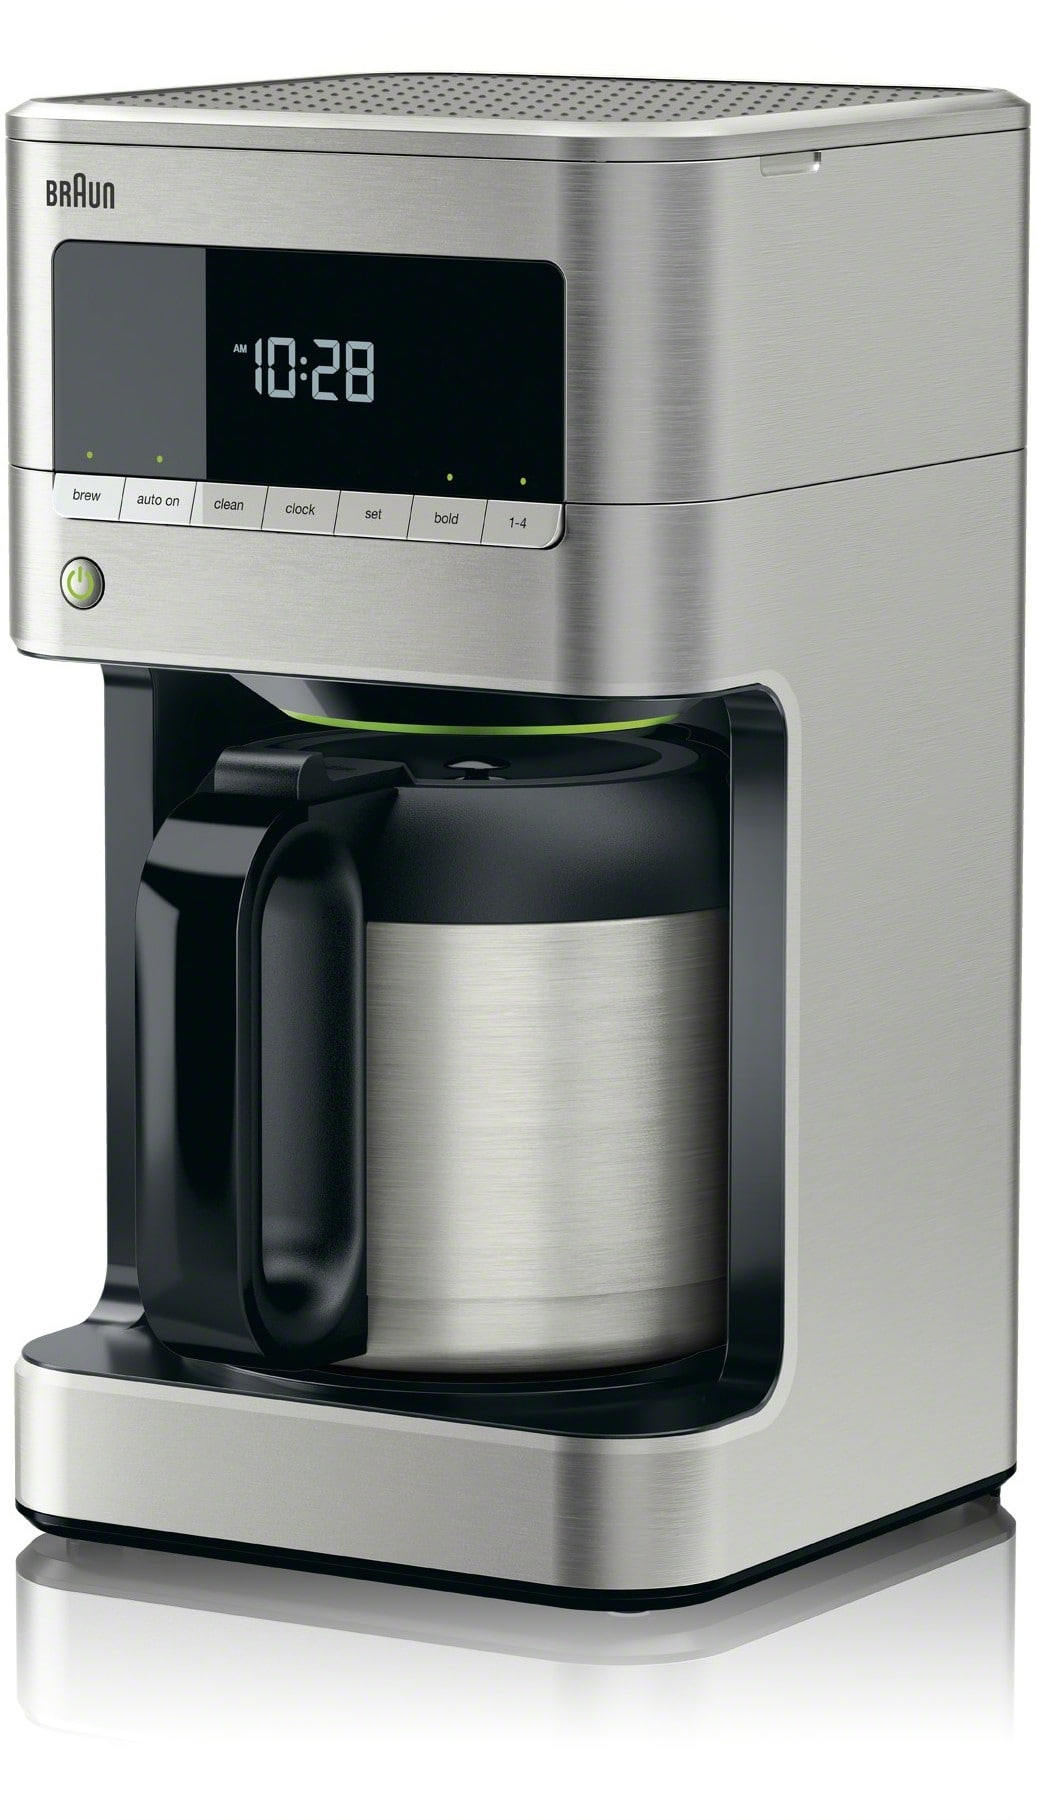 Braun Coffee Maker Directions : Braun KF7175SI BrewSense Drip Coffee Maker with PureFlavor Technology, Anti-Drip System, Thermal ...